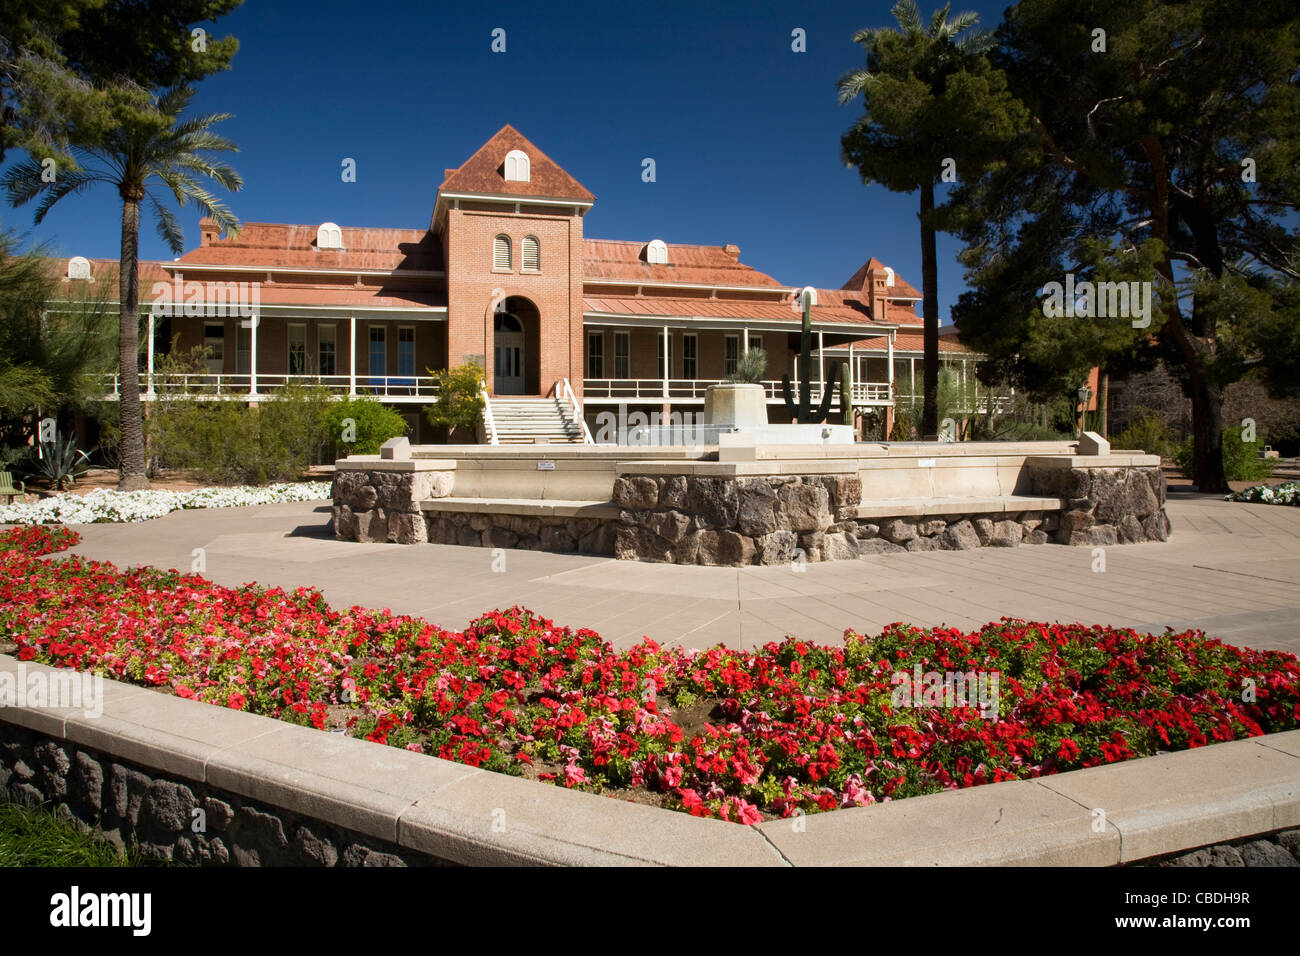 ARIZONA - Old Main building on the University of Arizona campus in